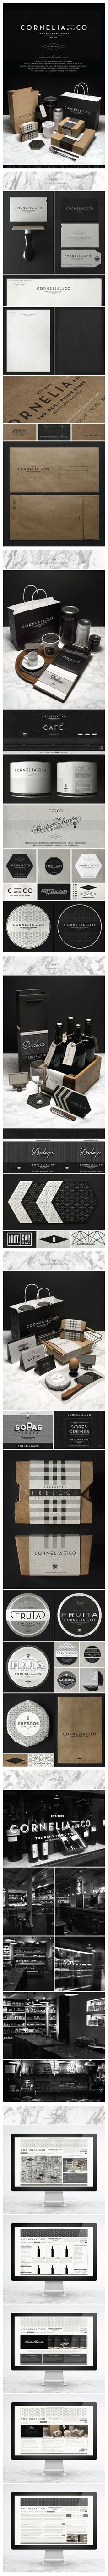 CORNELIA and CO [ Brand identity & Packaging ] by Oriol Gil